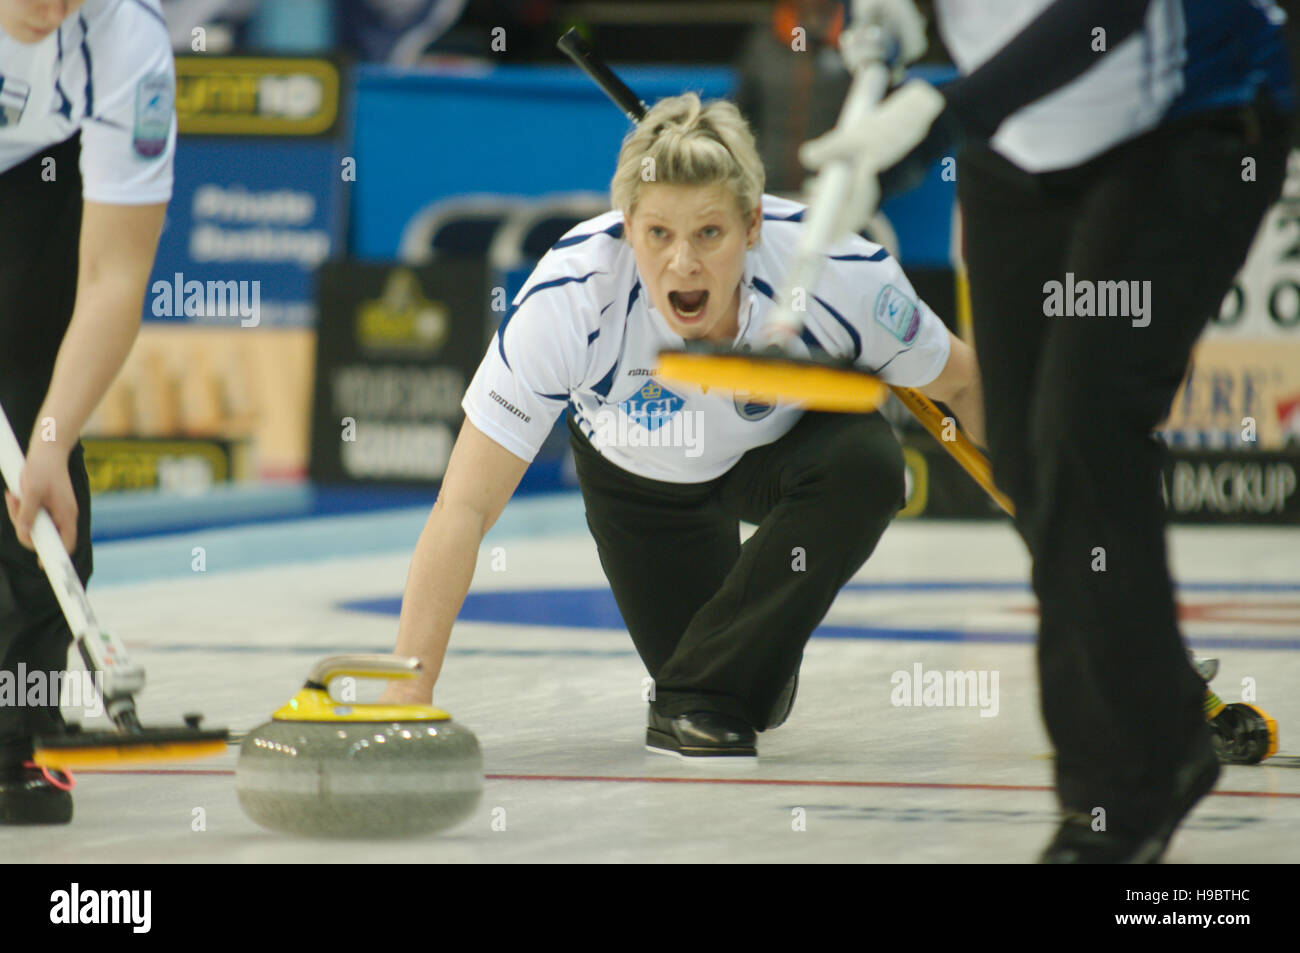 Braehead Arena, Renfrewshire, Scotland, 22 November 2016. Anne Malmi, skip of Finland,delivering a stone and shouting - Stock Image